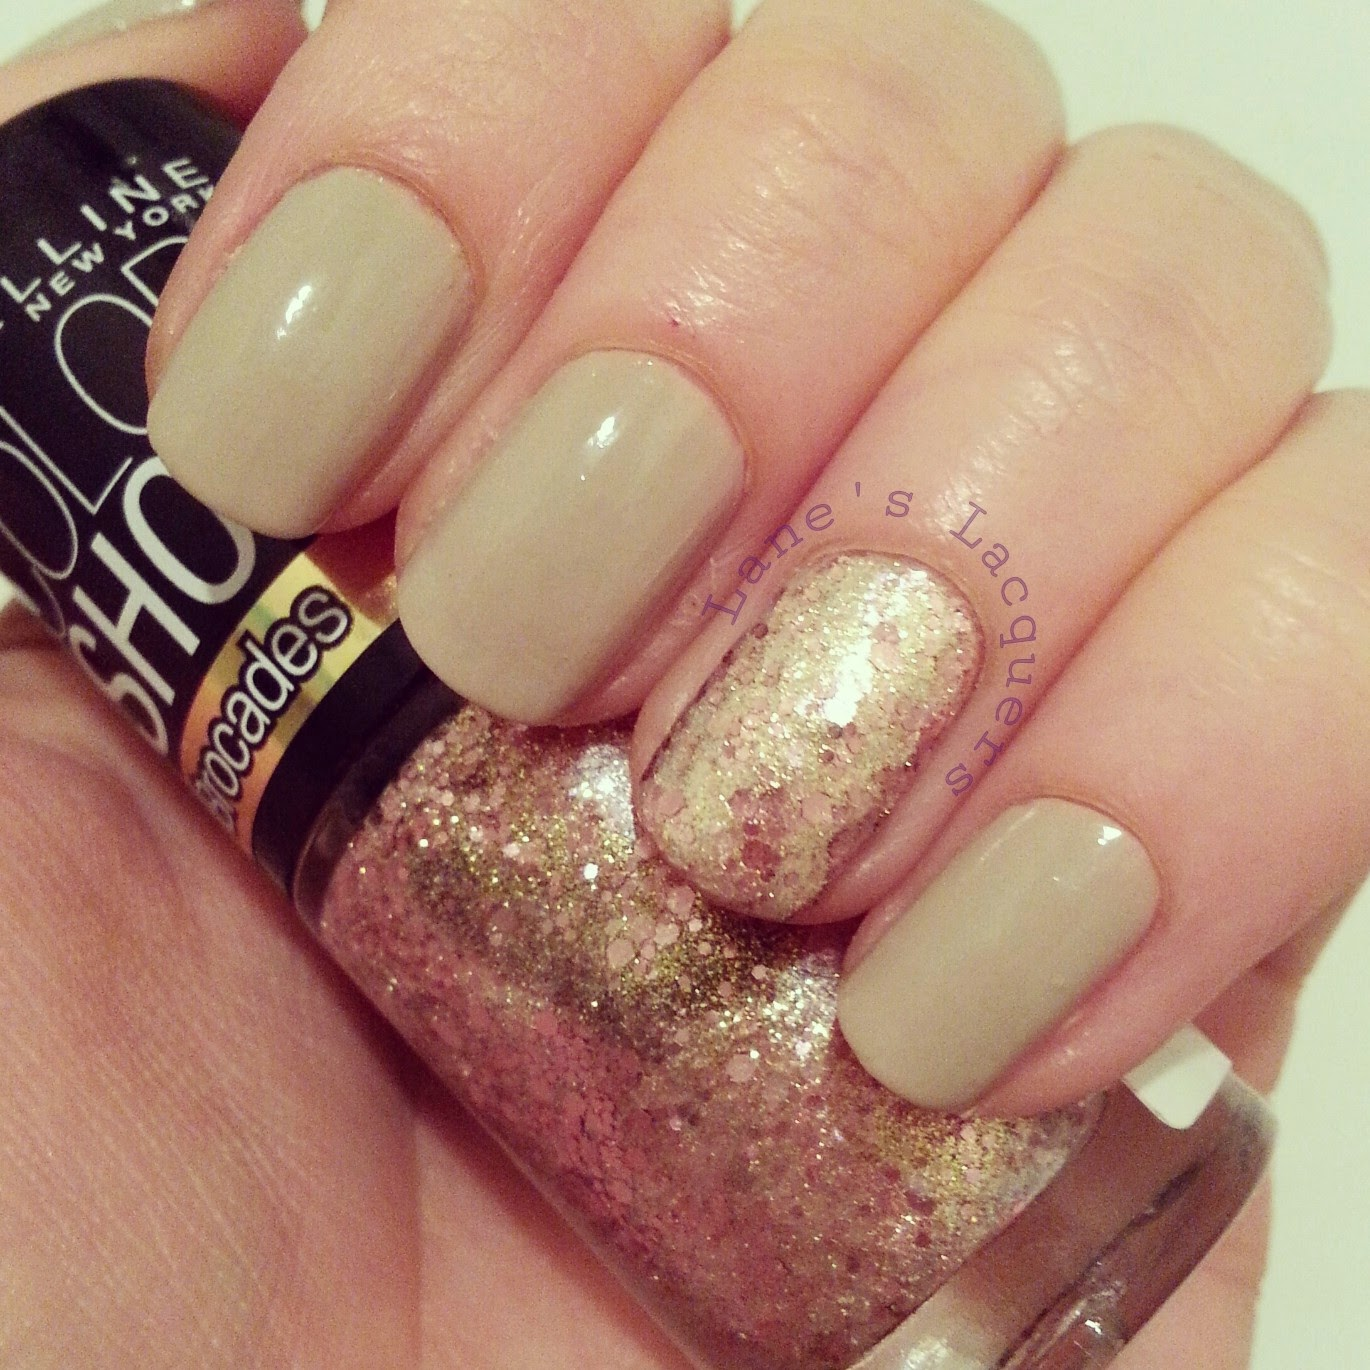 maybelline-color-show-bare-it-all-knitted-gold-nails